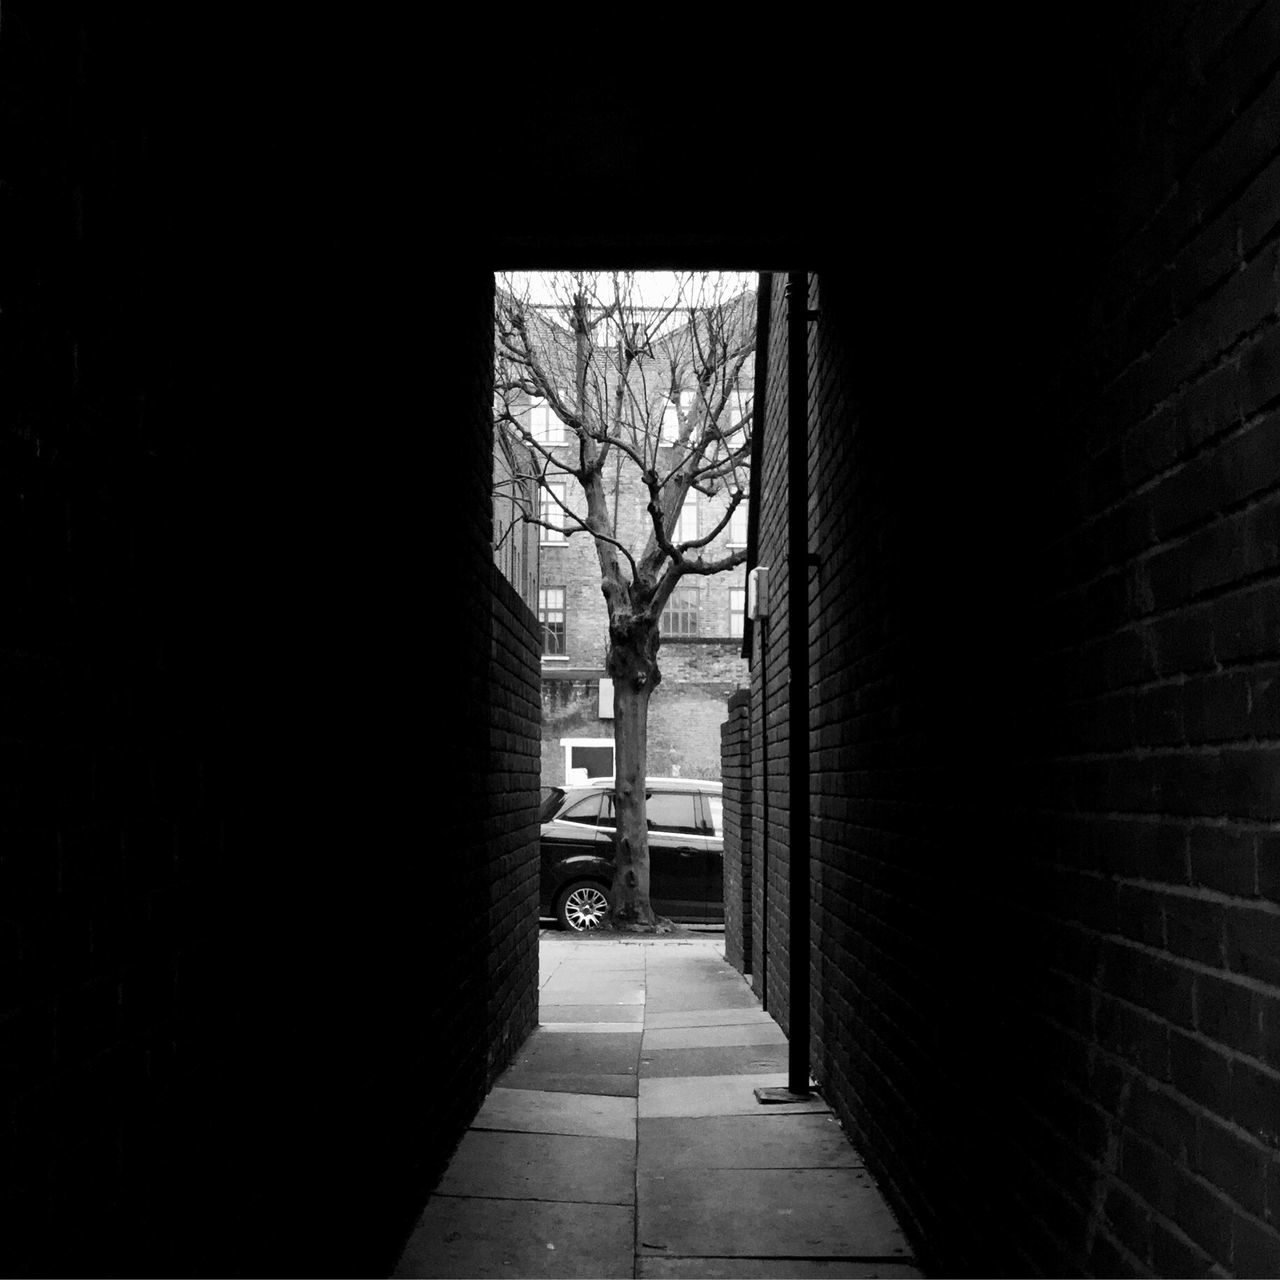 Architecture Built Structure Bare Tree Tree No People Entrance The Way Forward Day Building Exterior Indoors  Sky EyeEm Gallery EyeEm Best Shots This Week On Eyeem London Outdoors Streetphotography Residential Building Alley Blackandwhitephotography Dark Alleyway Bricks